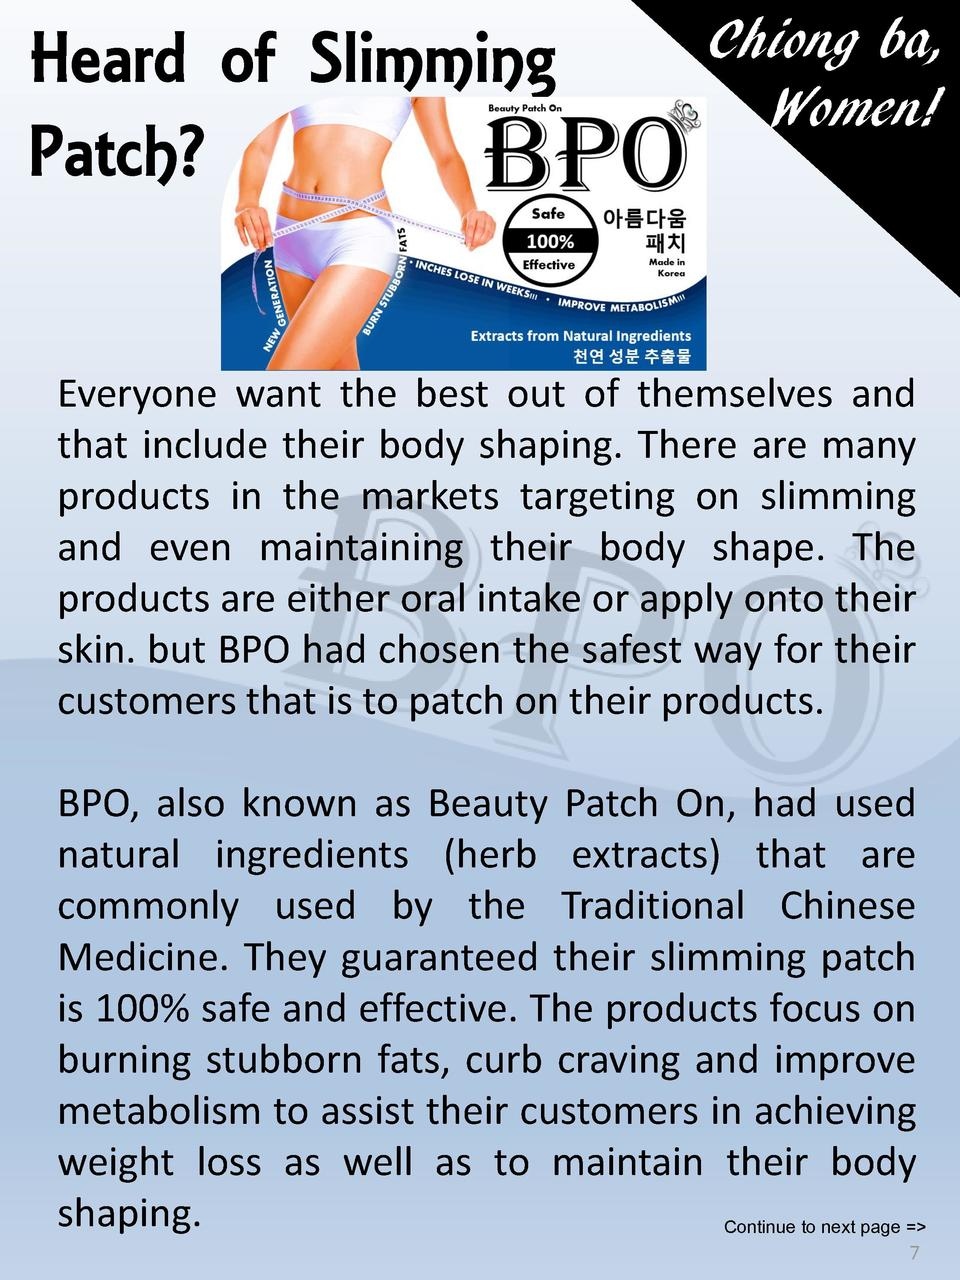 Heard of Slimming Patch   Chiong ba, Women   Everyone want the best out of themselves and that include their body shaping....